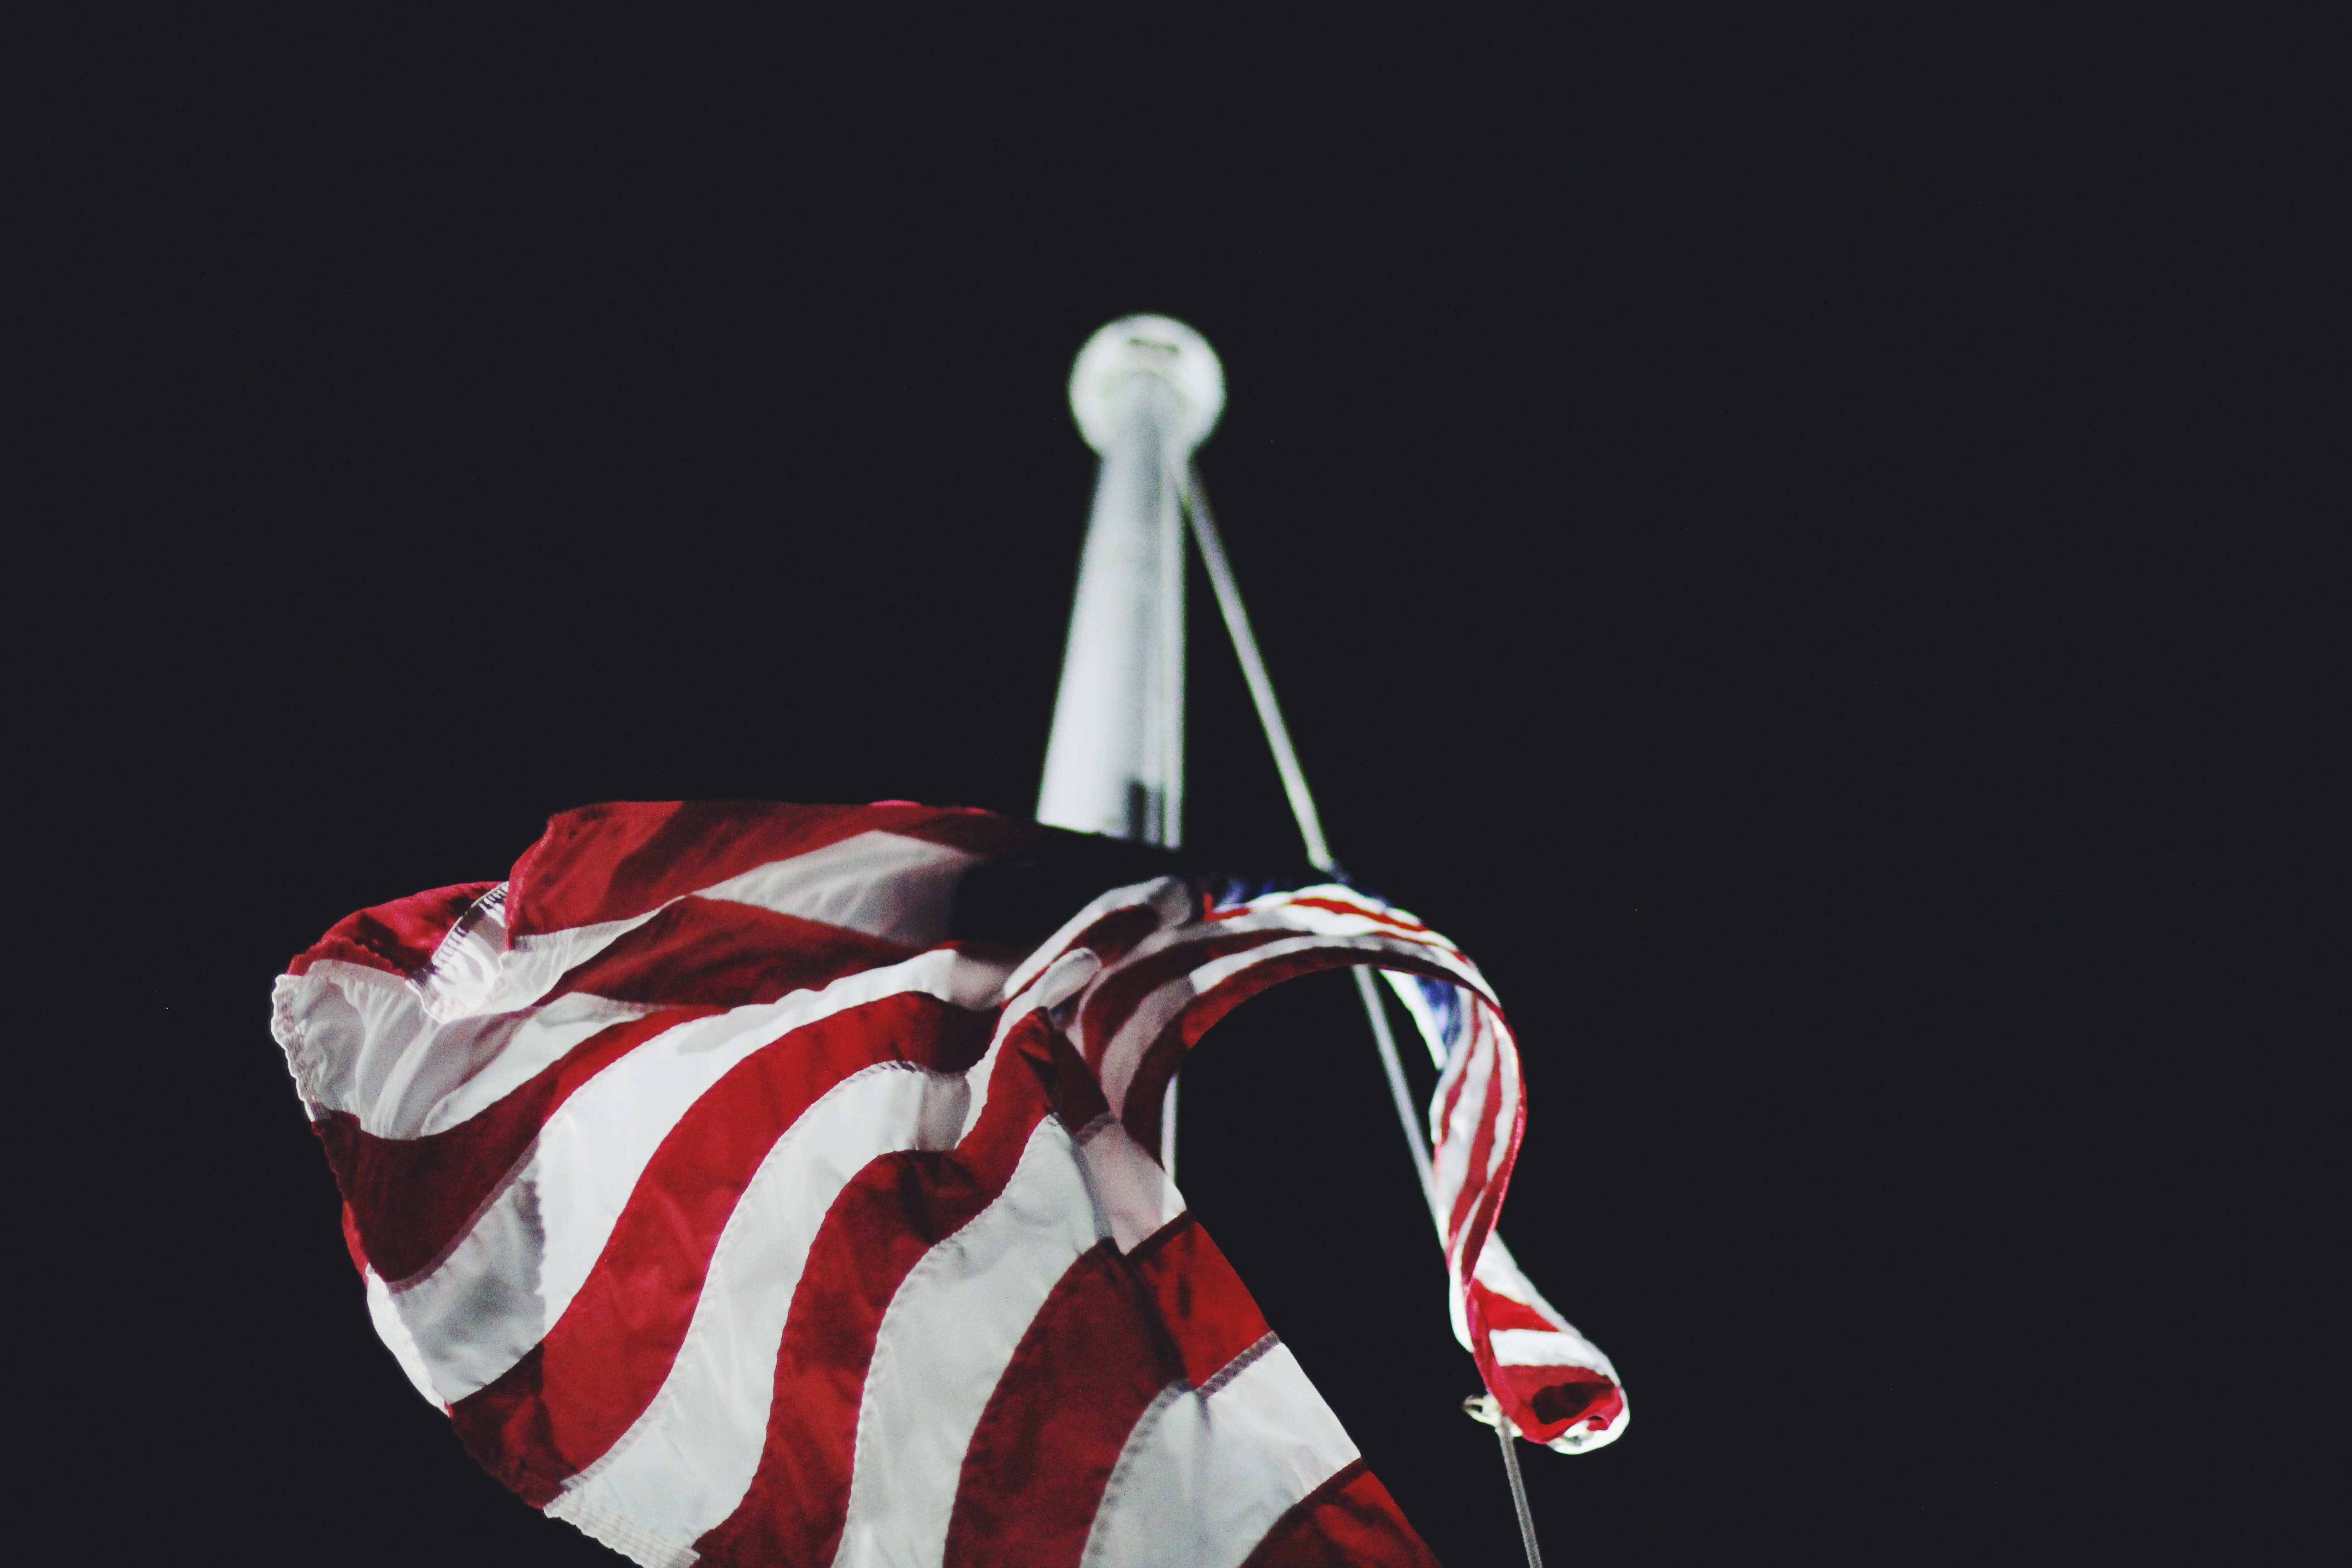 A close-up of the American flag on a flagpole.